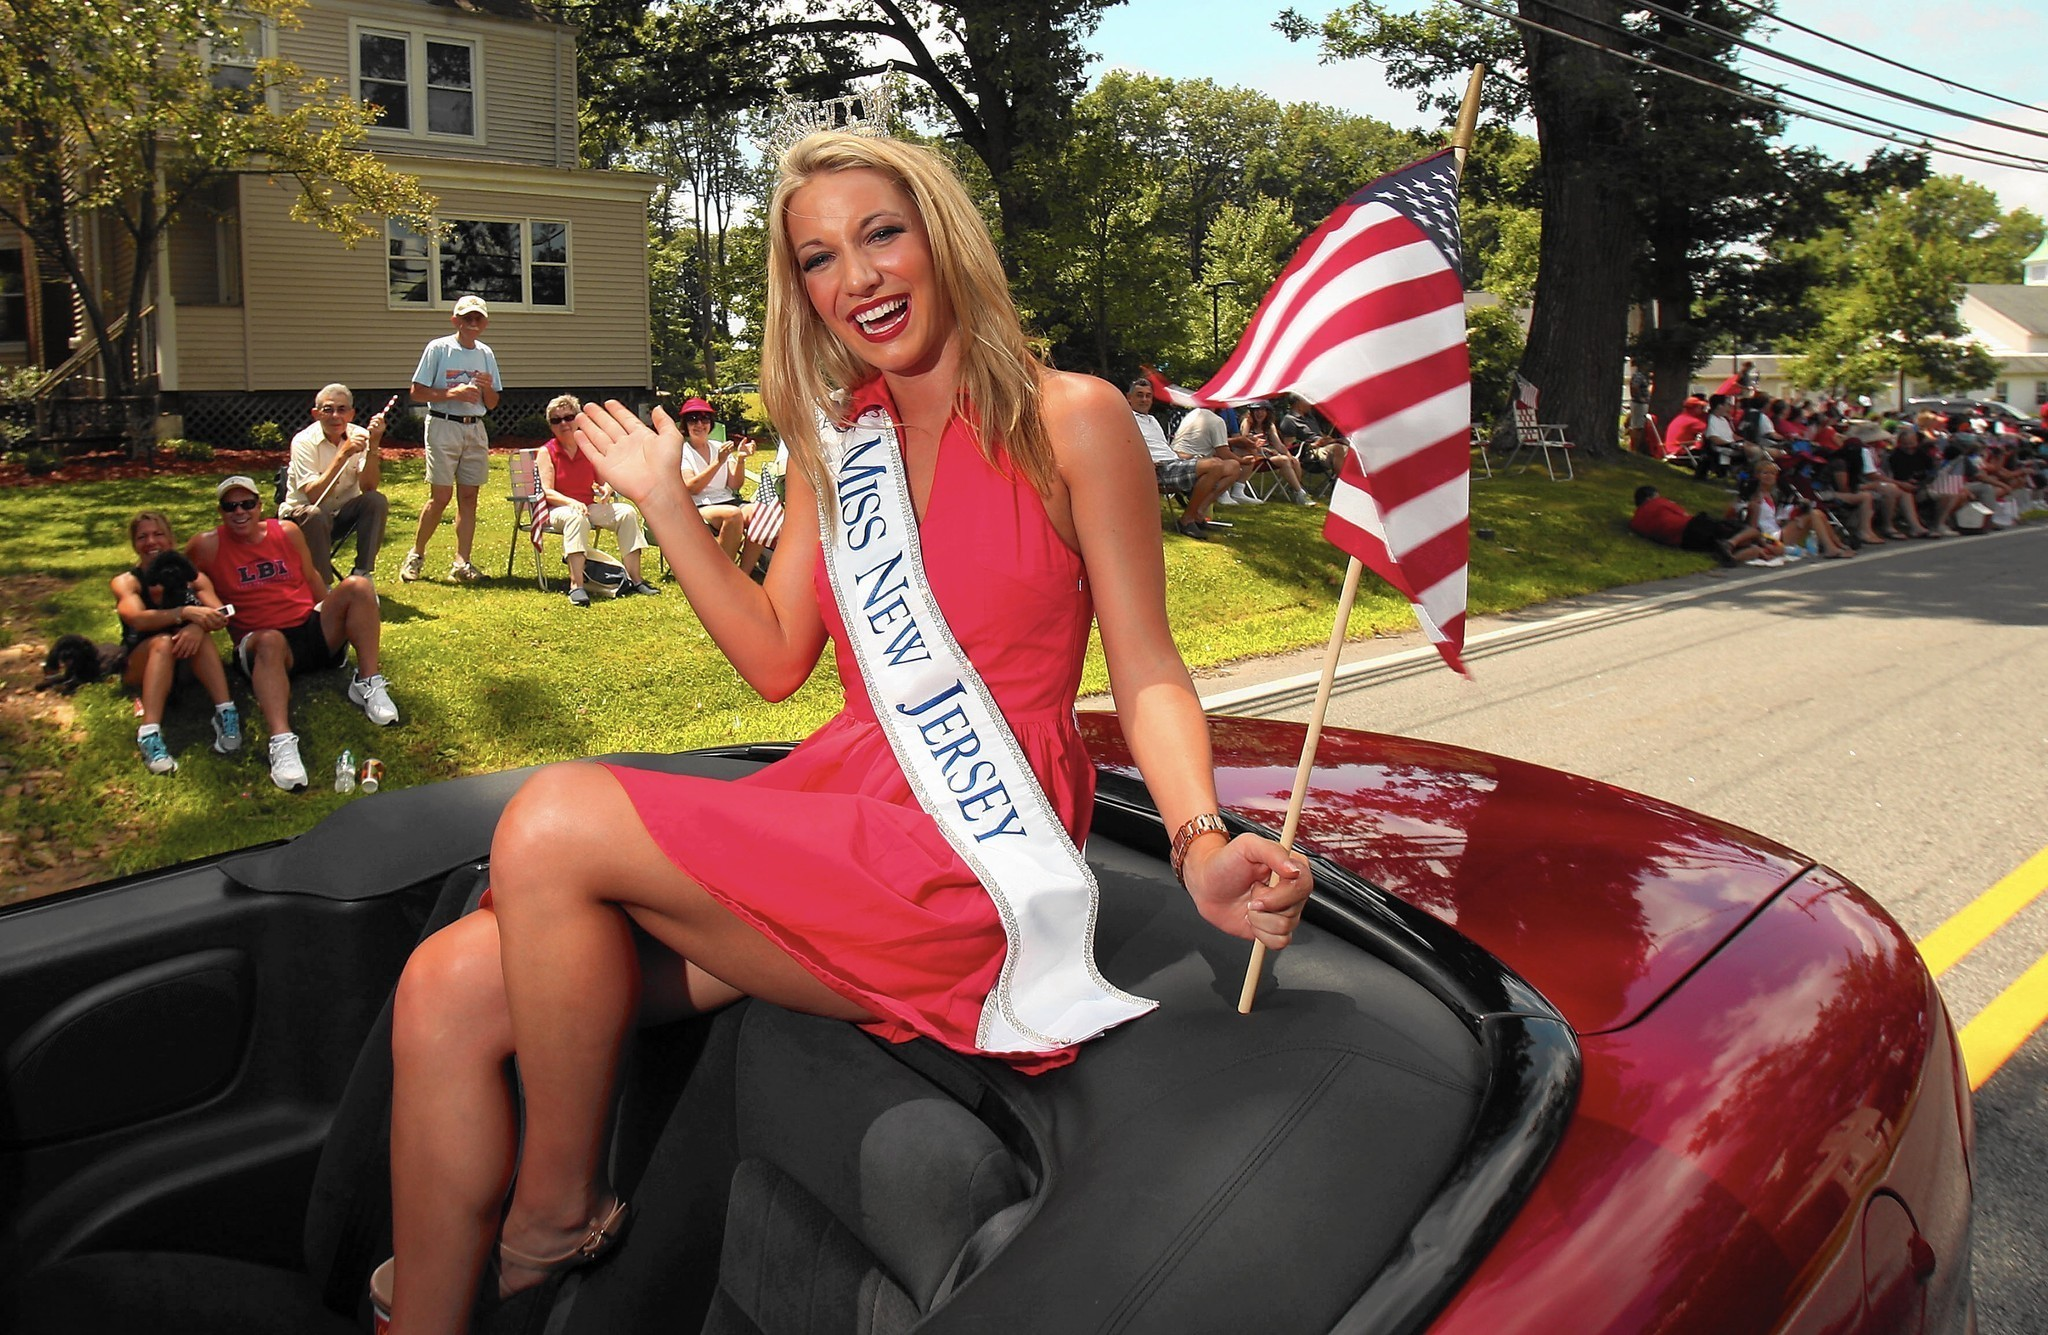 Former Miss New Jersey dies - The Morning Call